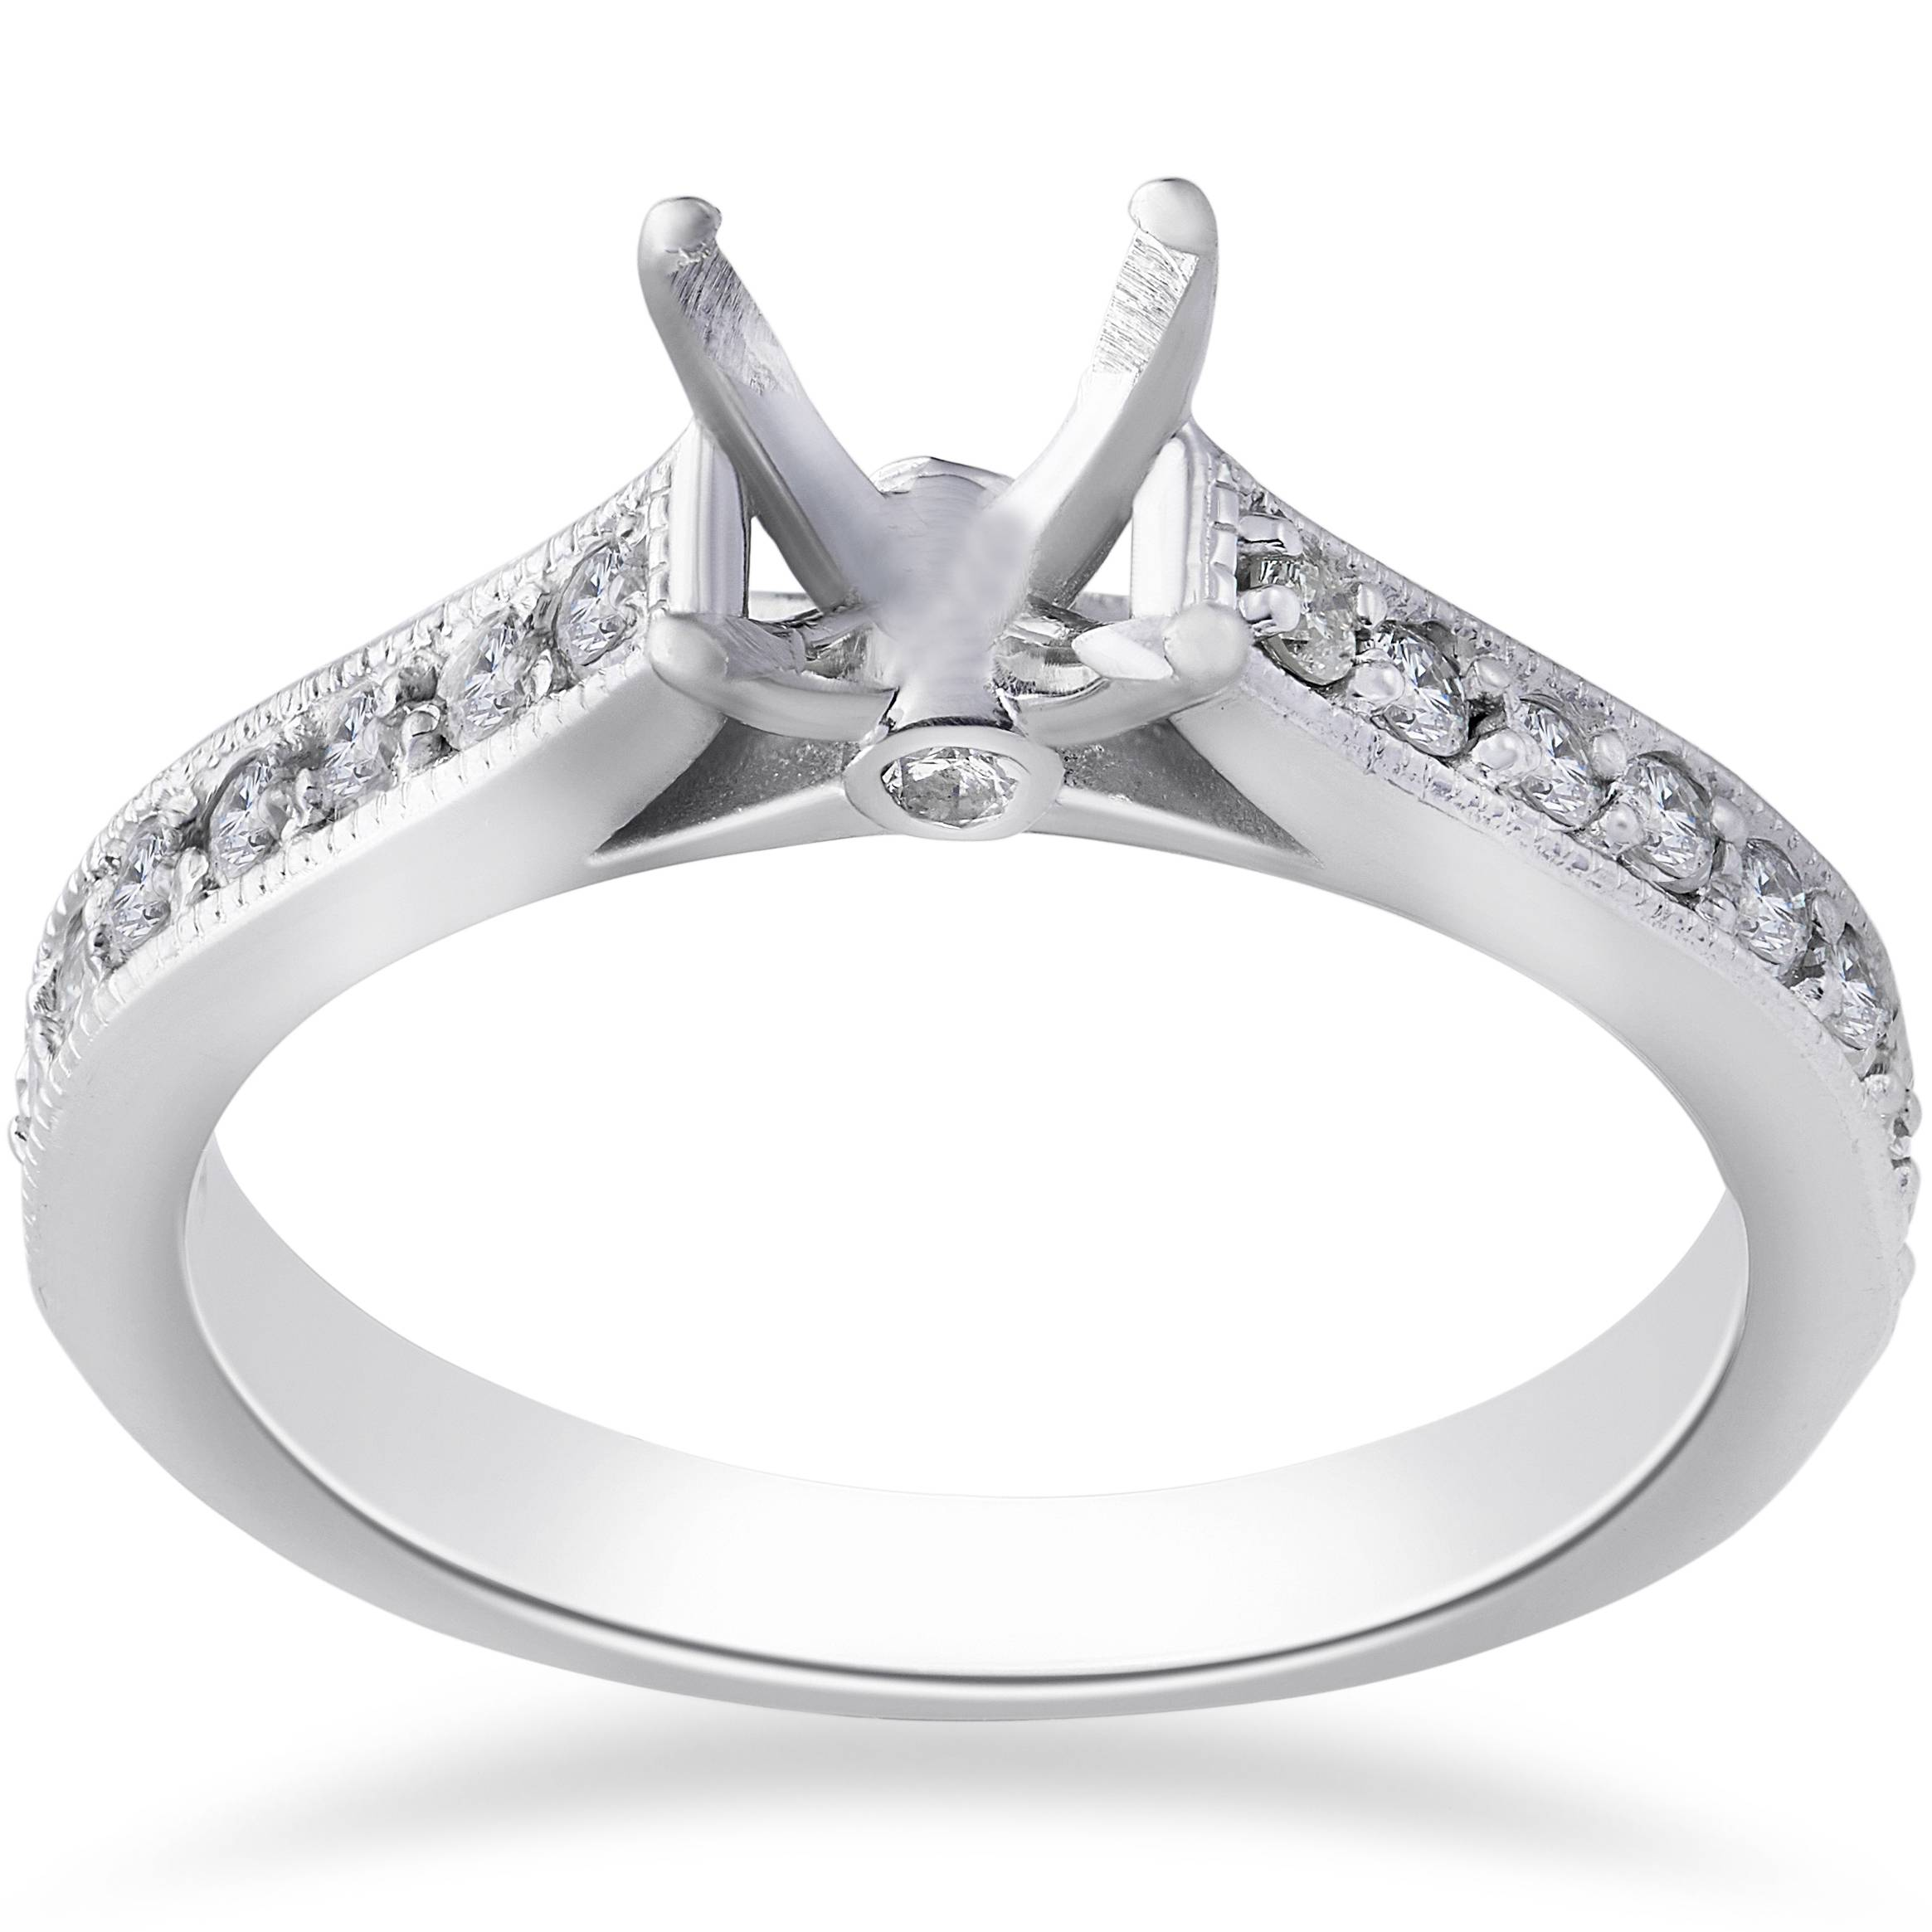 1 3ct Diamond Engagement Semi Mount Ring 14K White Gold Setting